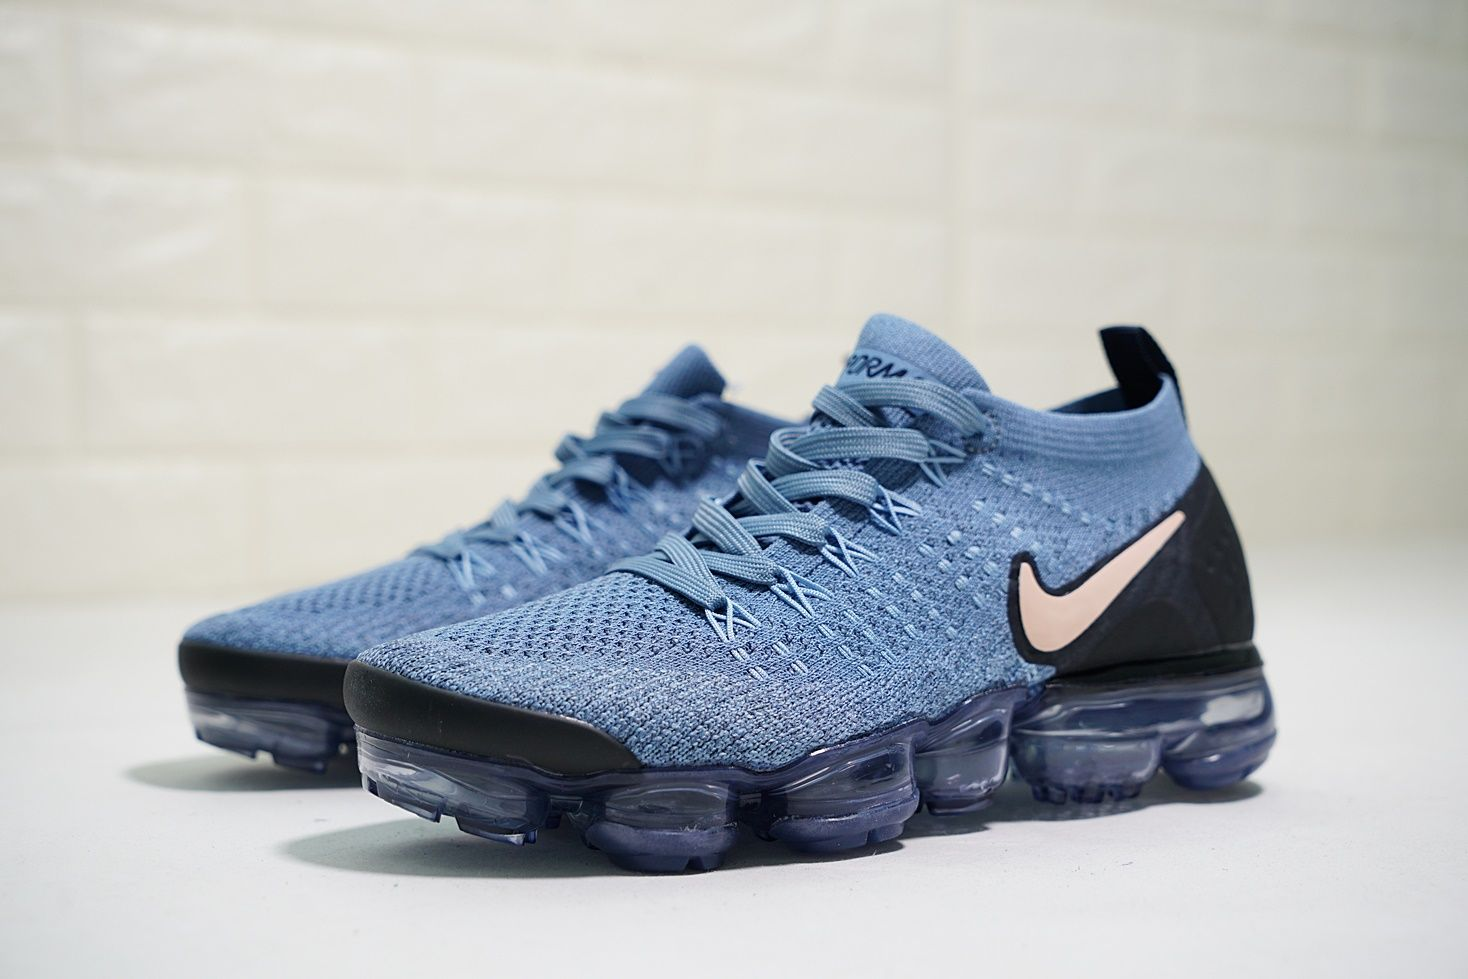 f8ff33339f3f NIKE AIR VAPORMAX FLYKNIT 2 LIGHT BLUE NUDE POWDER 942843 401 ...